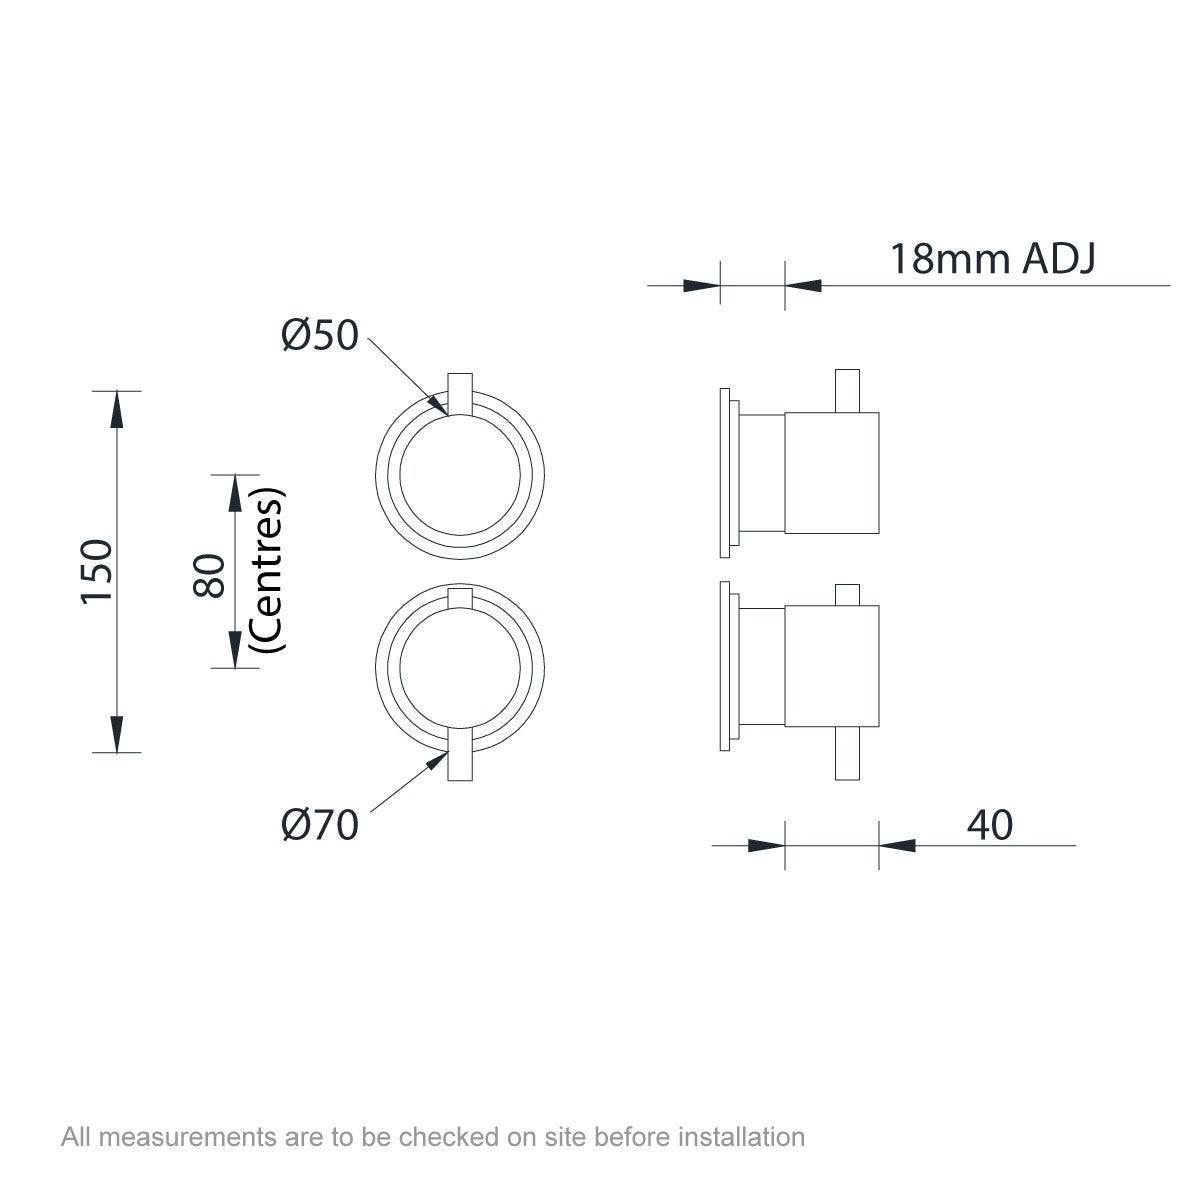 Dimensions for Mode Hardy round twin thermostatic shower valve